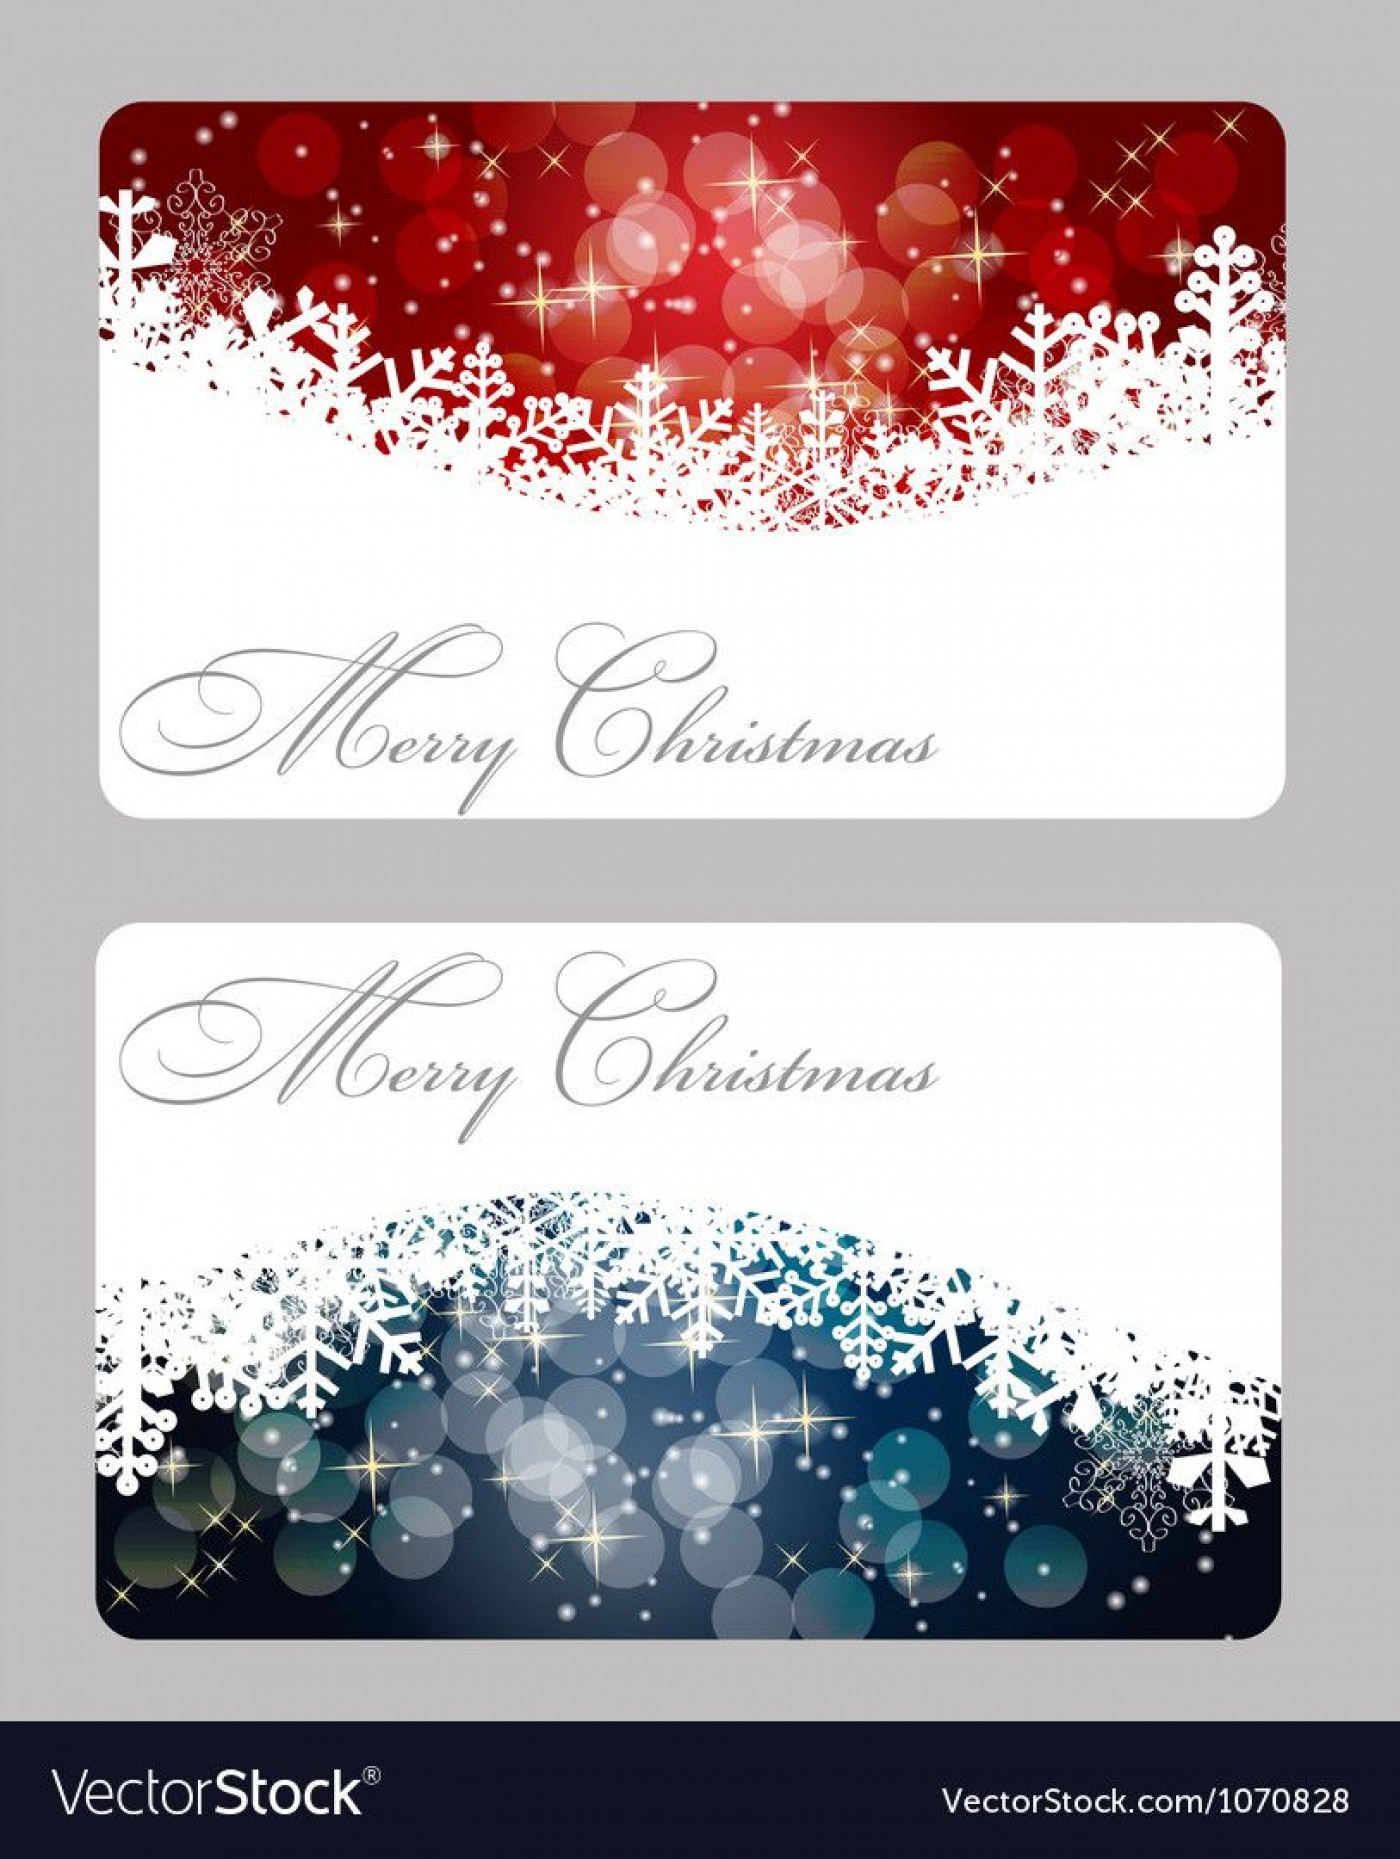 009 Dreaded Christma Card Template Free Download Idea  Photo Xma Place1400